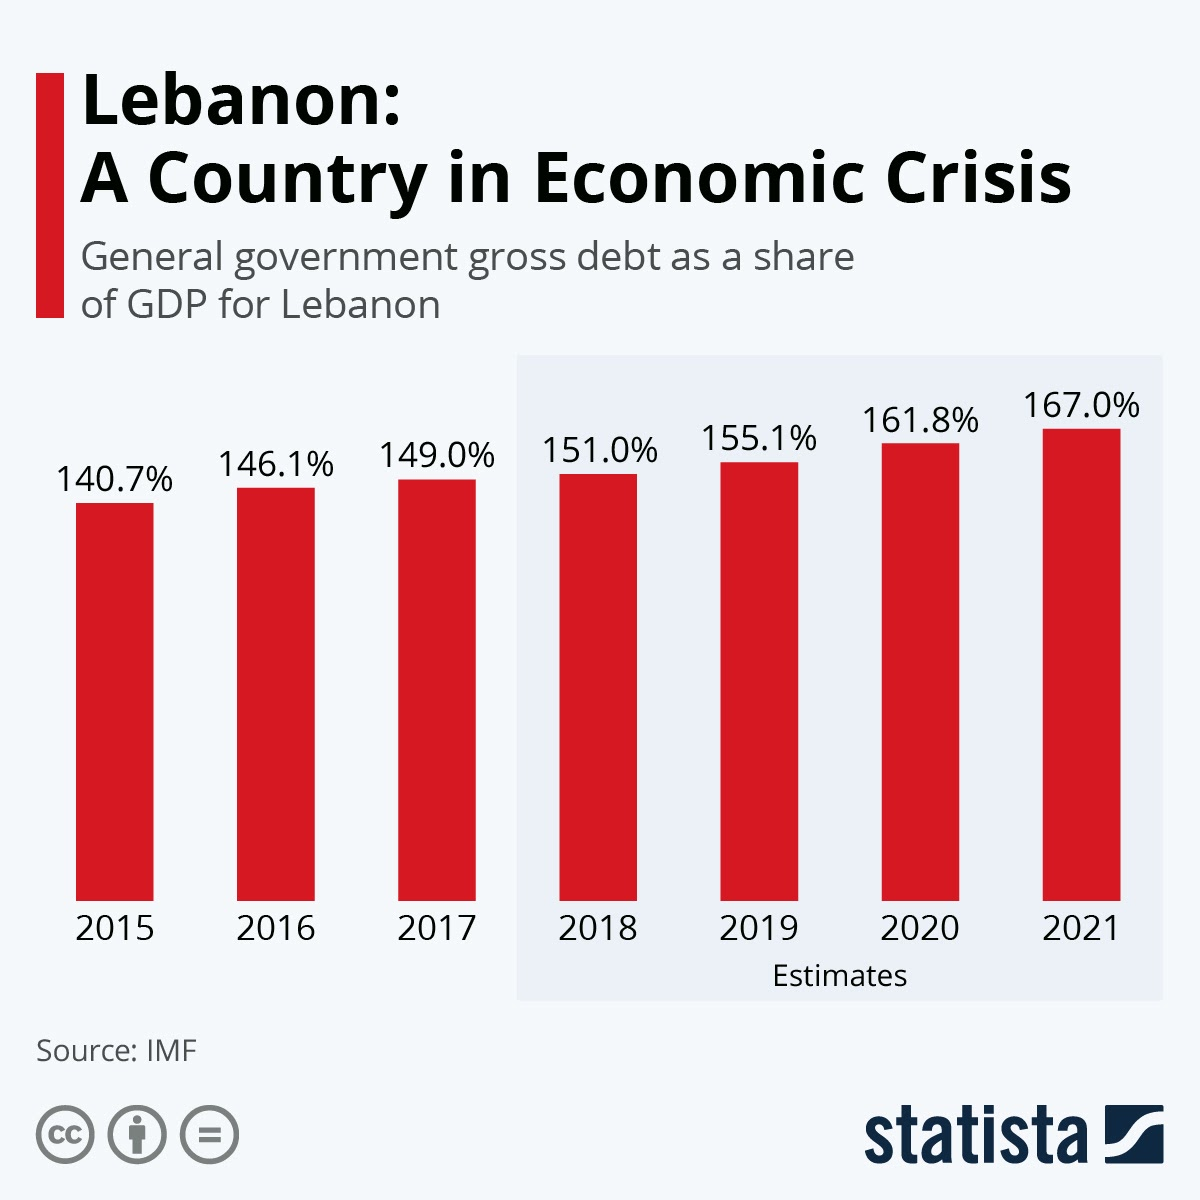 Lebanon: A Country in Economic Crisis #infographic